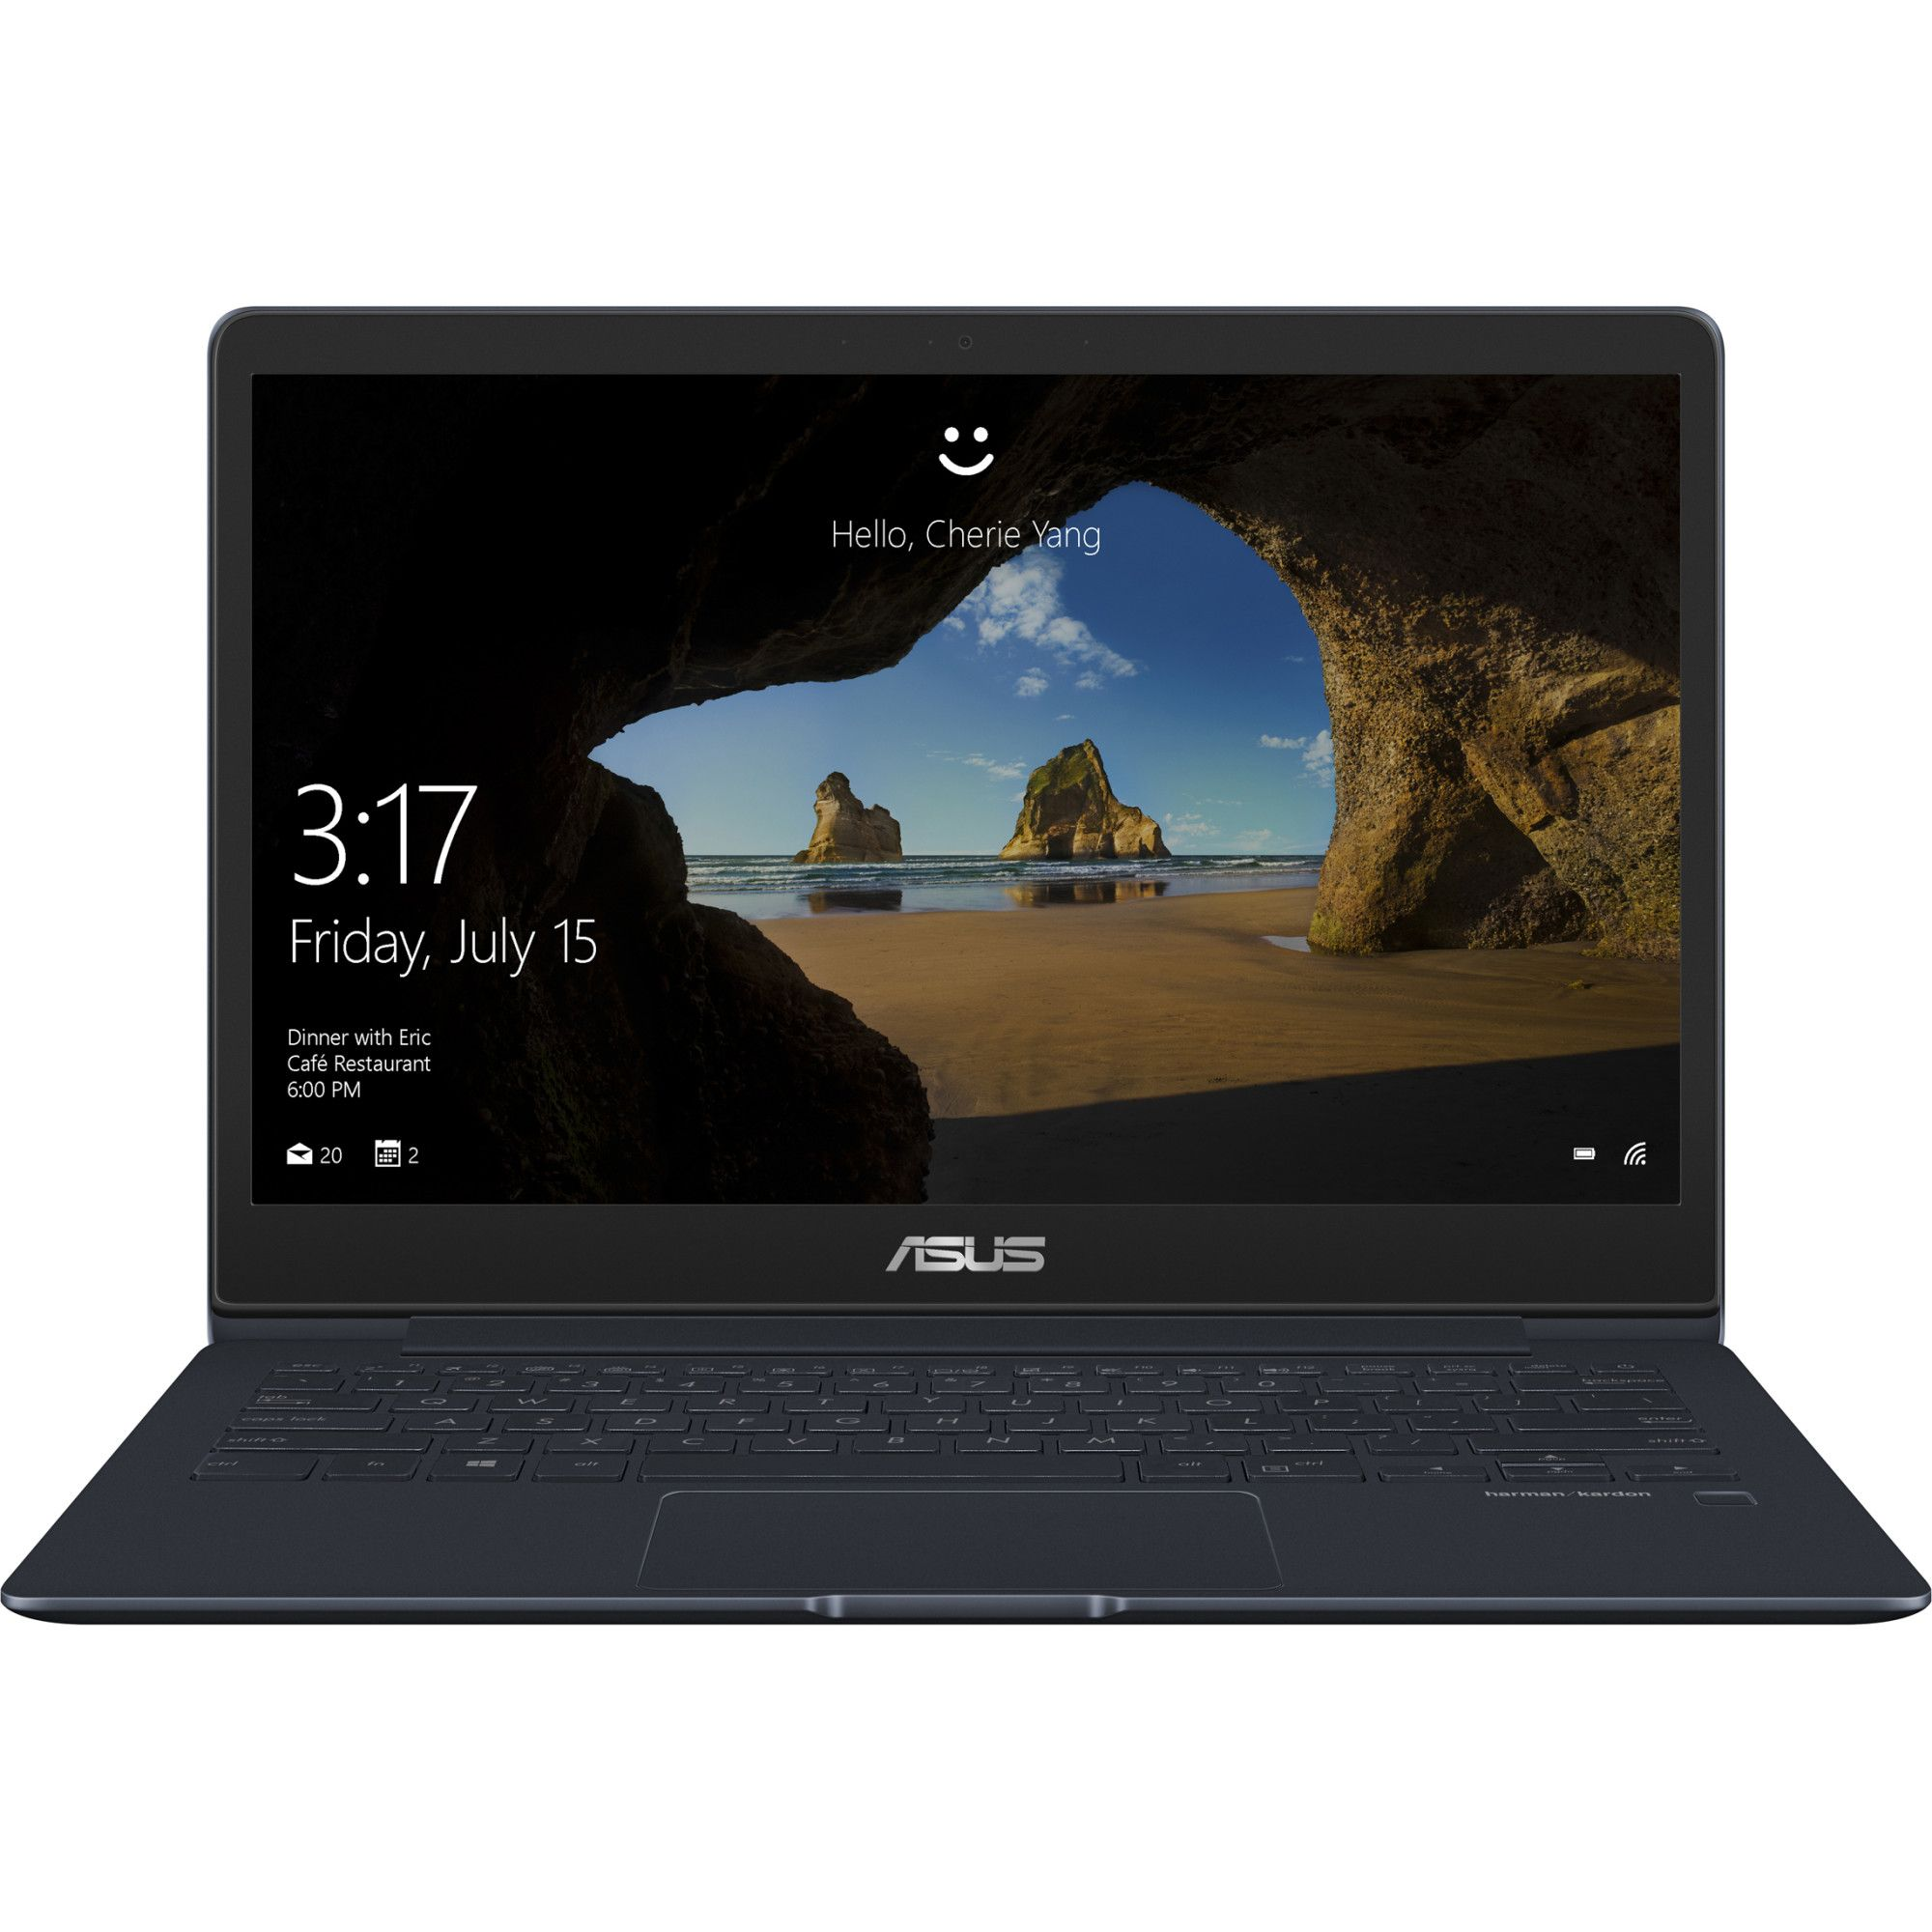 Ultrabook Asus ZenBook UX331FAL 13.3 Full HD Intel Core i5-8265U RAM 8GB SSD 256GB Windows 10 Albastru